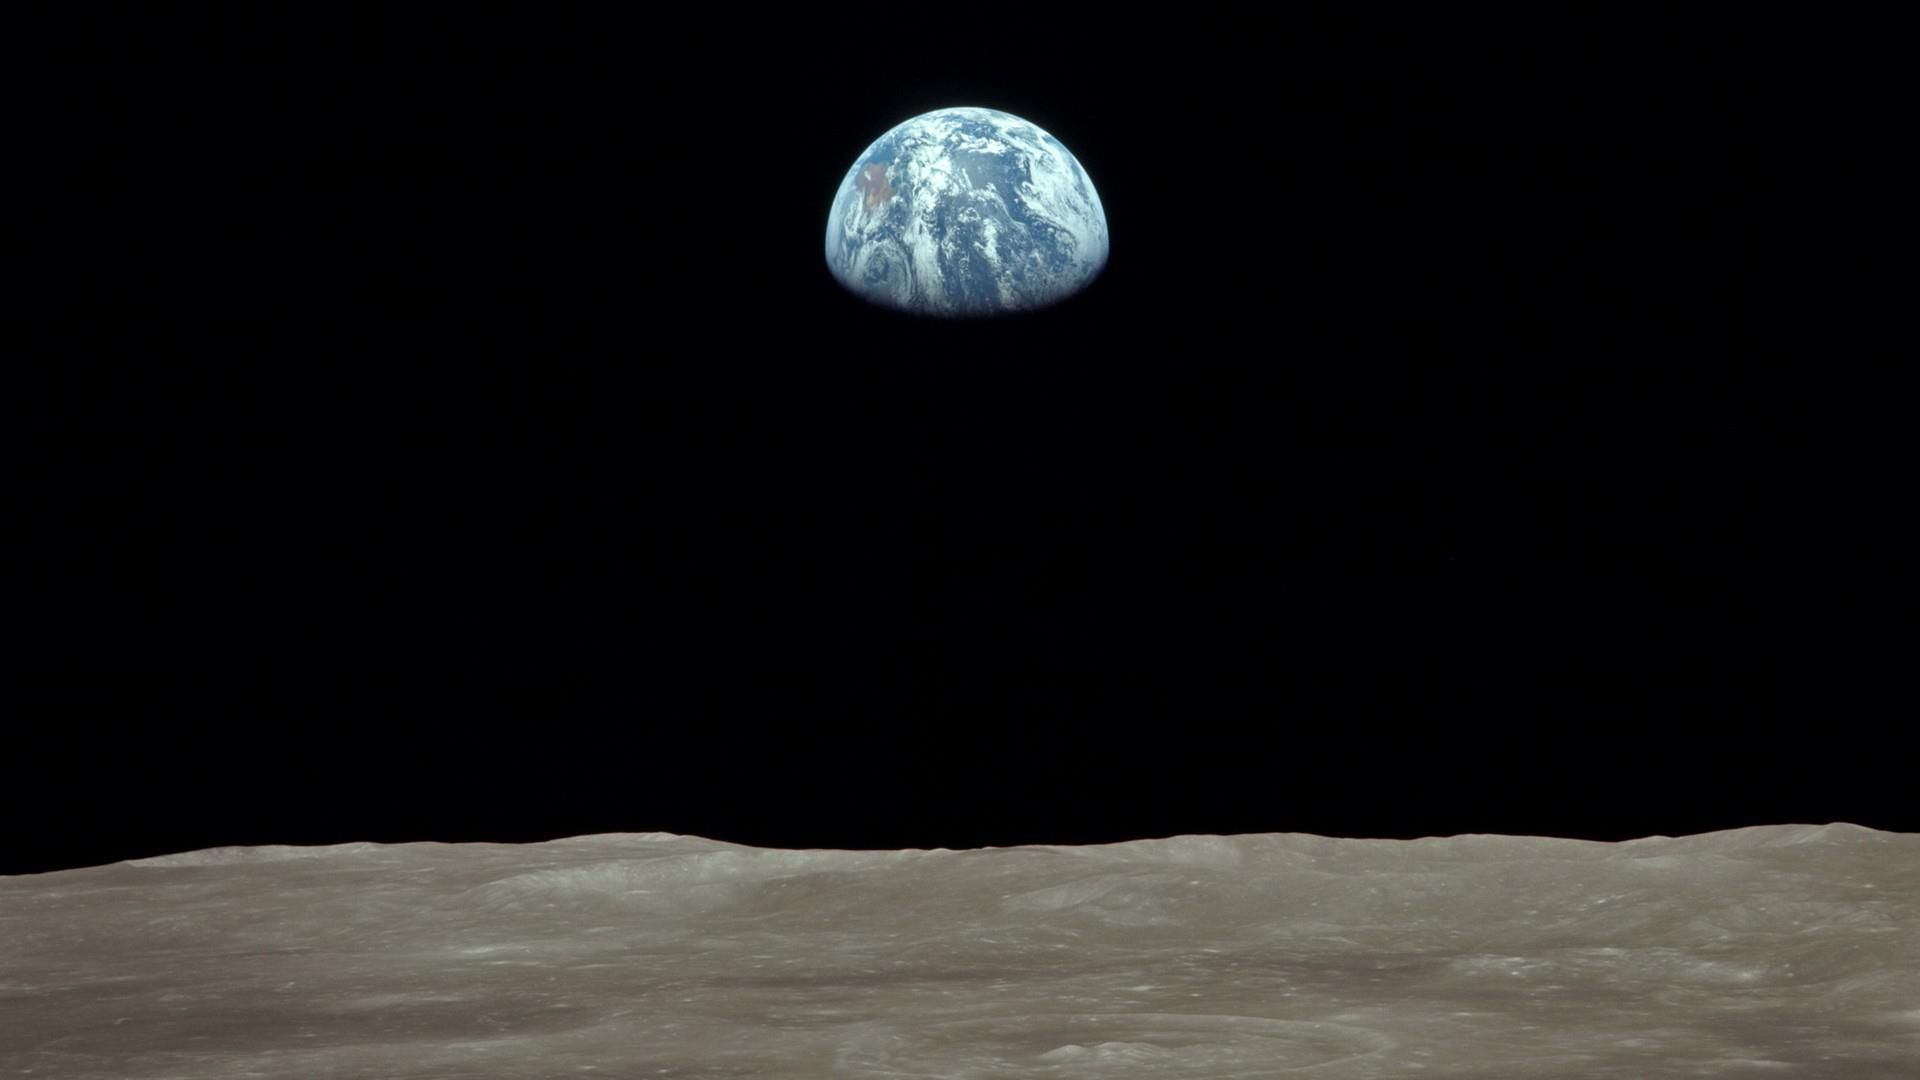 Earthrise I Love This Photo Taken From An Apollo Mission Wallpaper Earth Earth View Earth View From Space